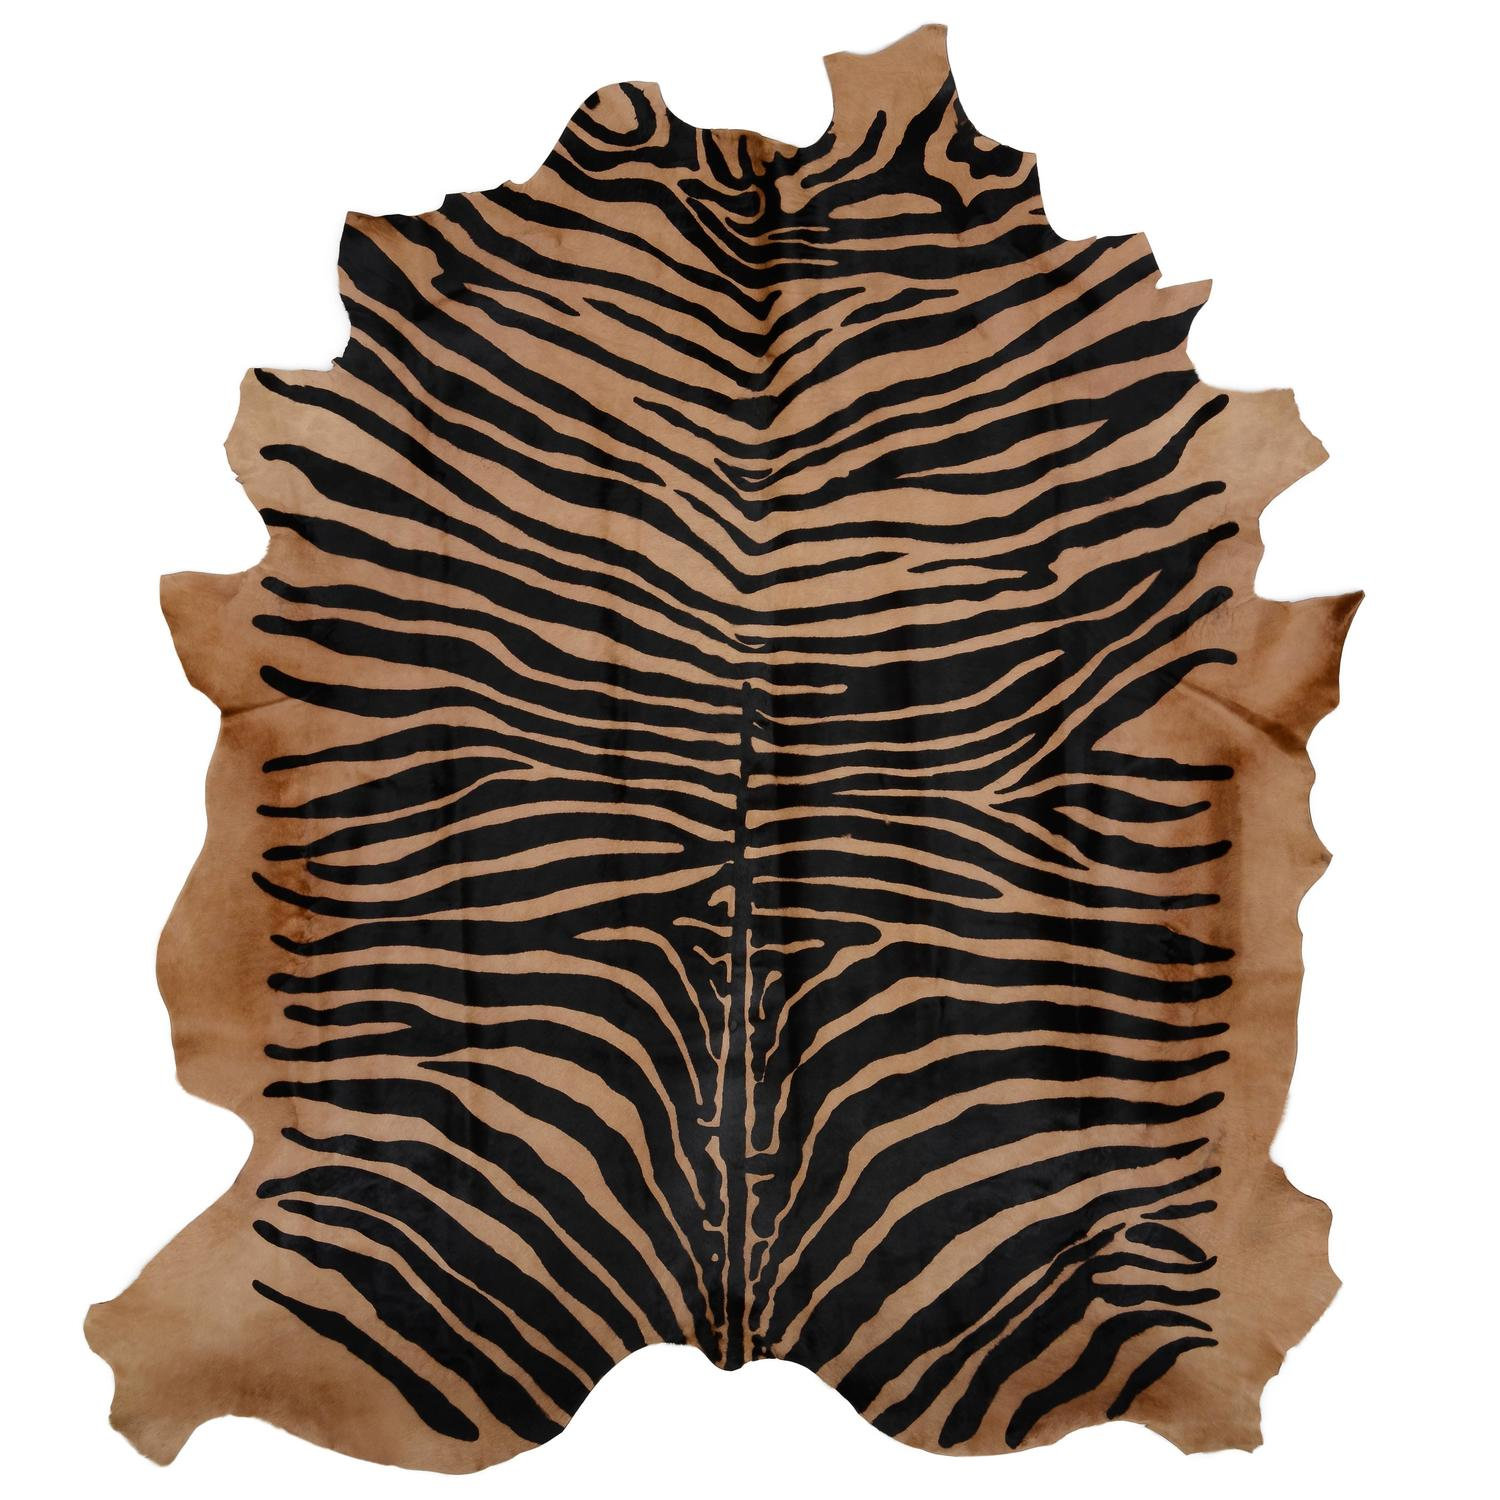 Large contemporary zebra stencil printed cowhide hair rug ink on